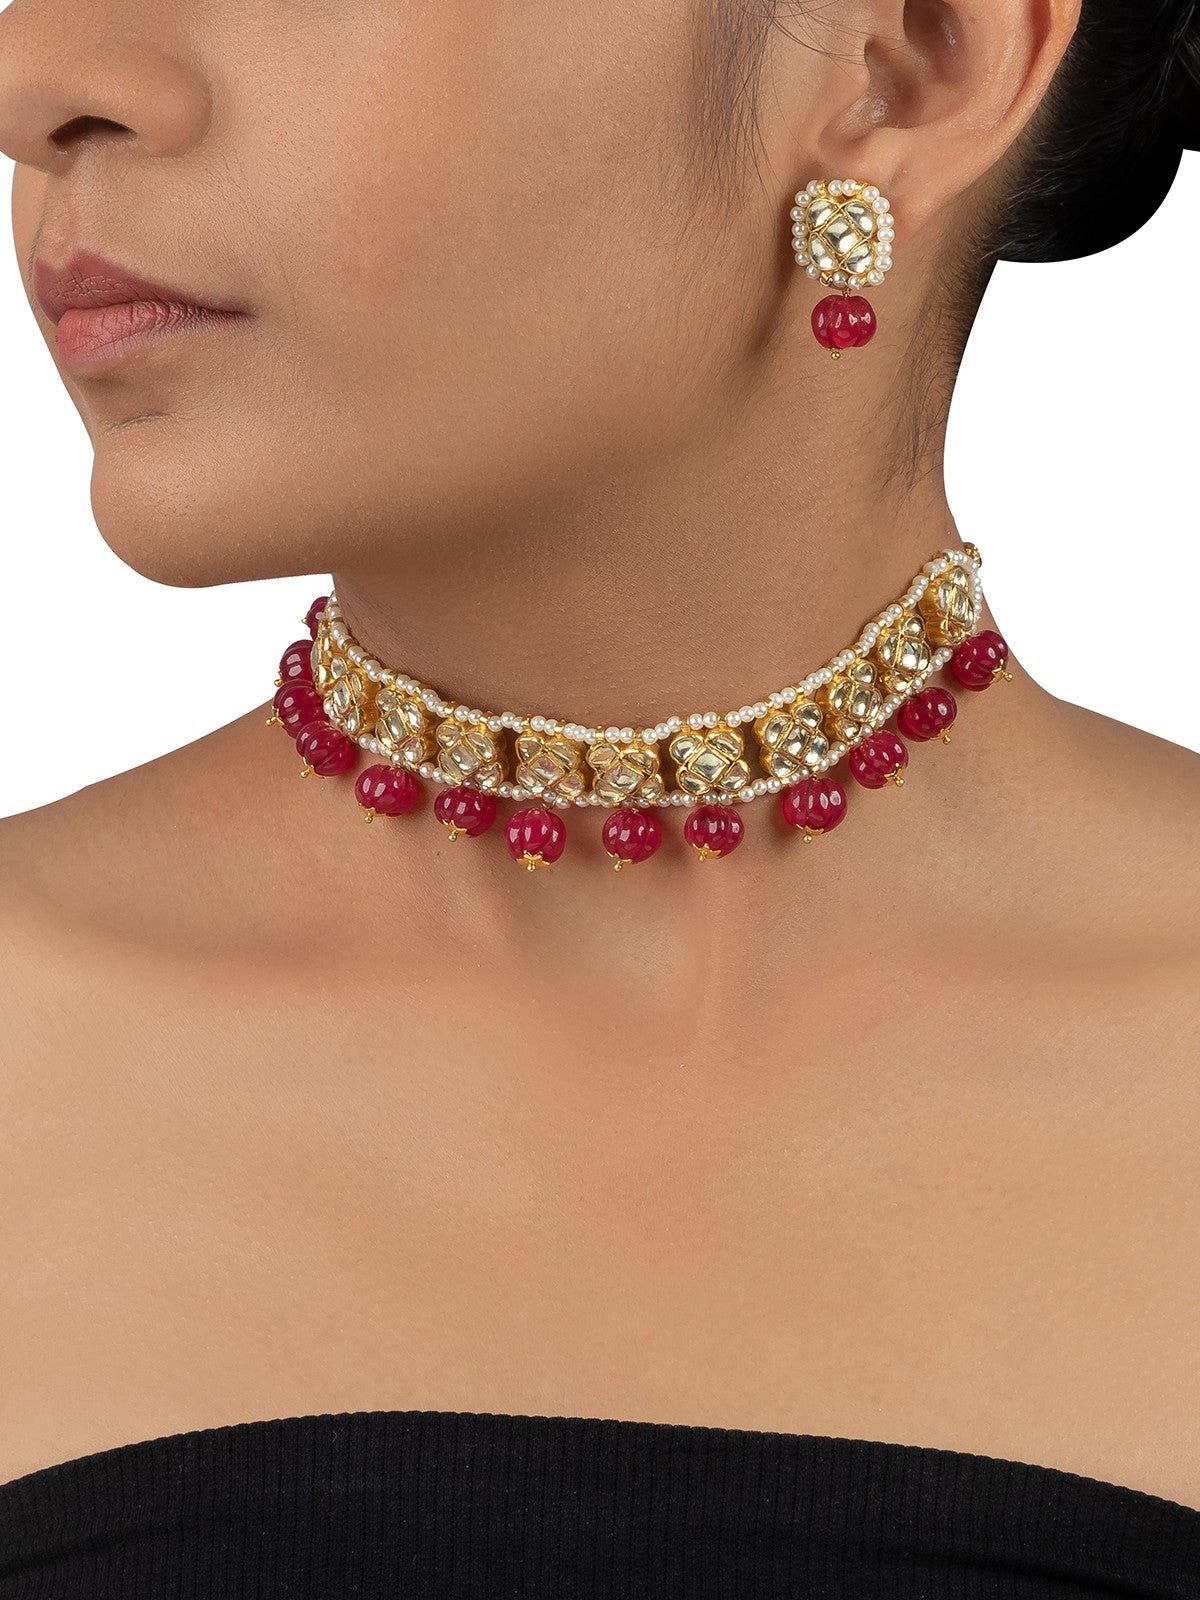 Yellow Jadau Choker Set With Maroon Muskmelon Beads Hanging